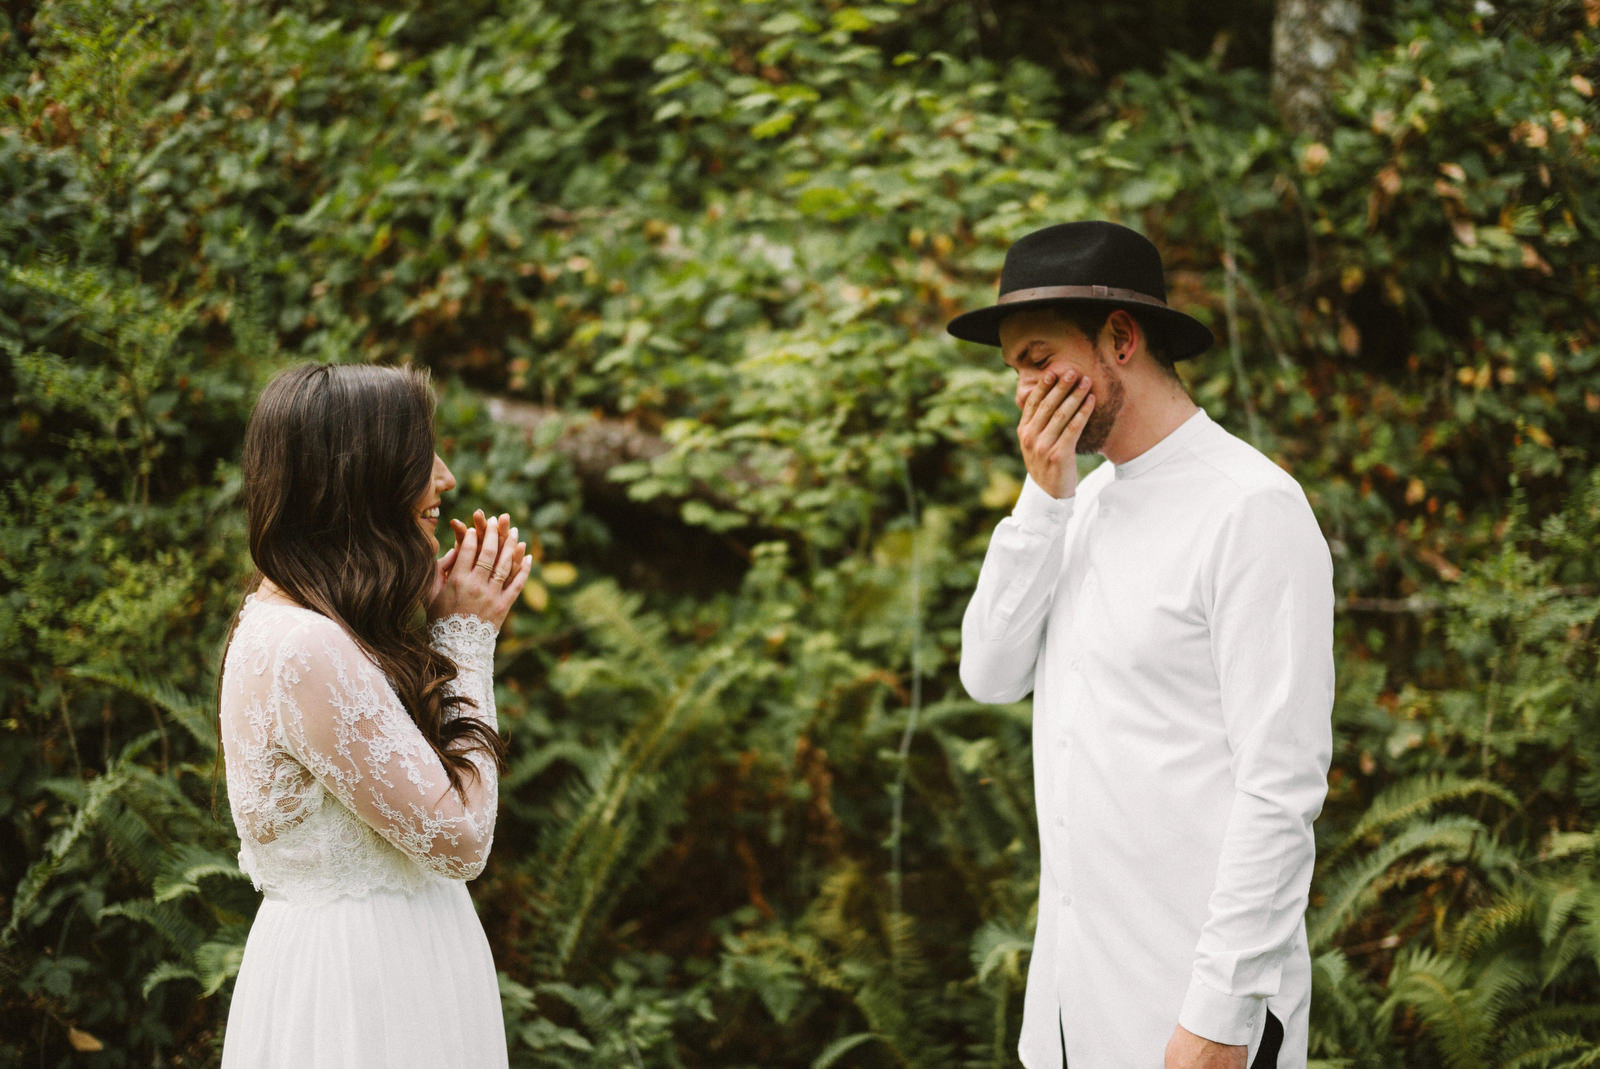 athena-and-camron-seattle-elopement-wedding-benj-haisch-rattlesnake-lake-christian-couple-goals6